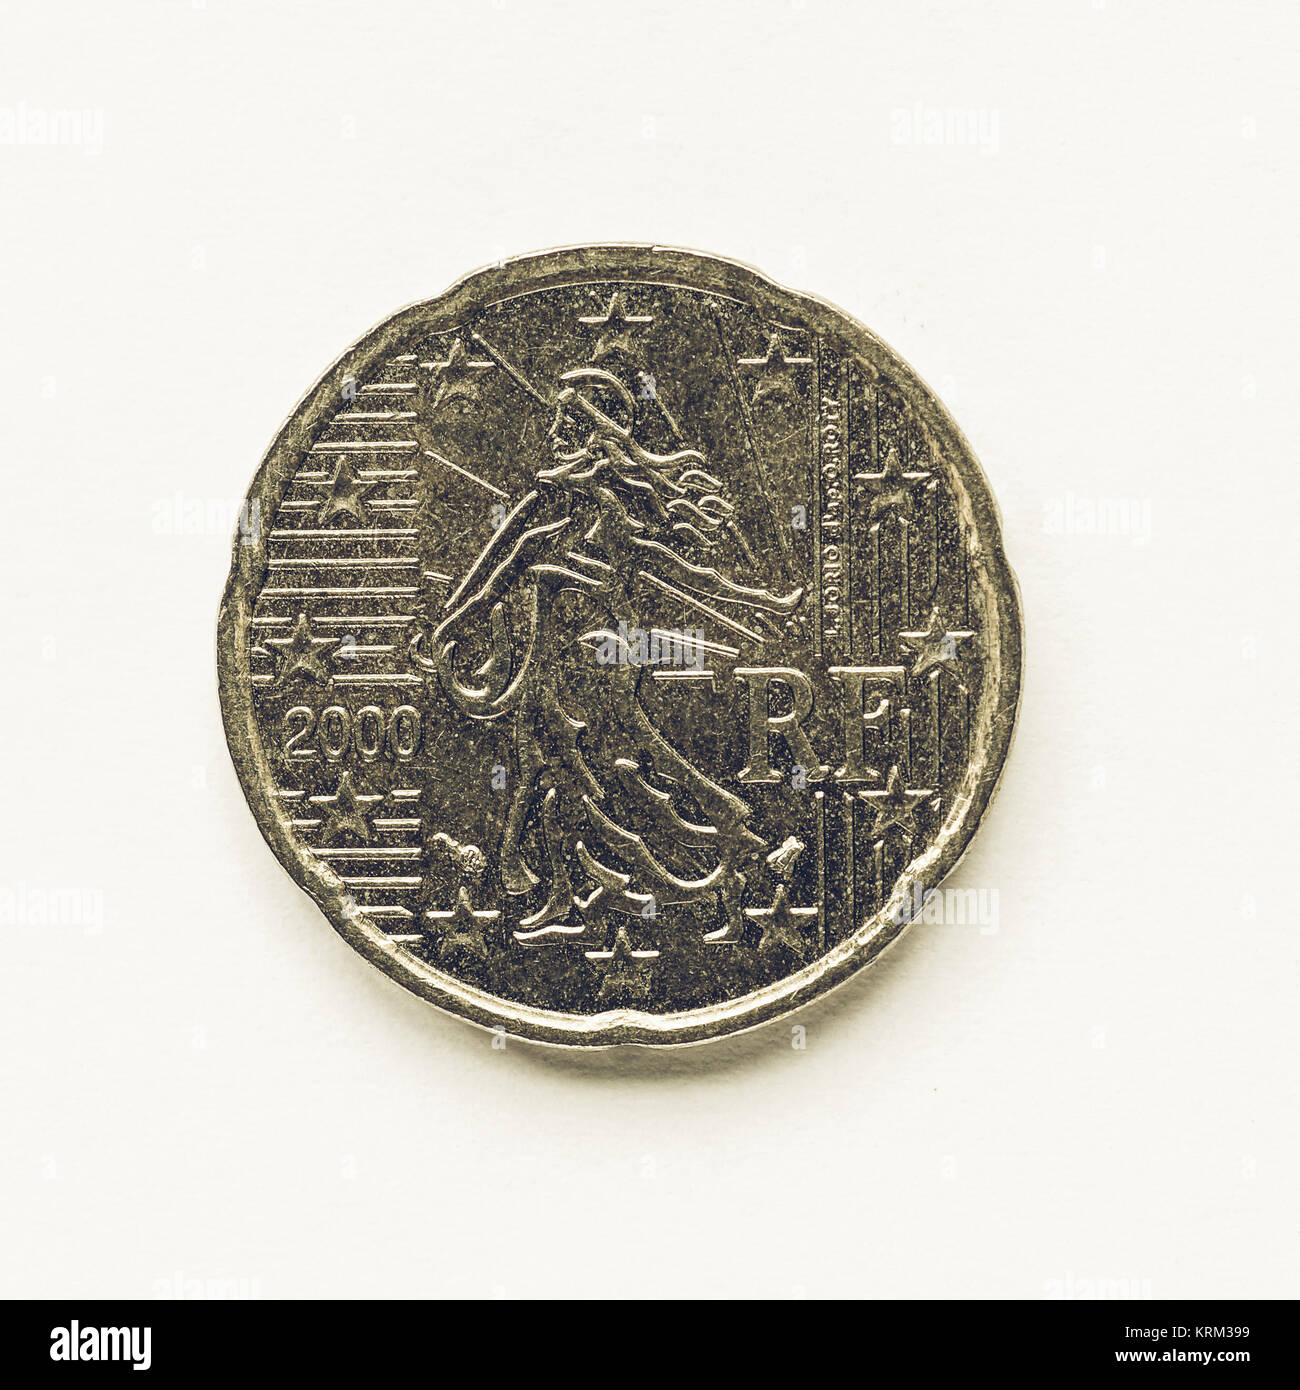 Vintage French 20 Cent Coin Stock Photo 169472053